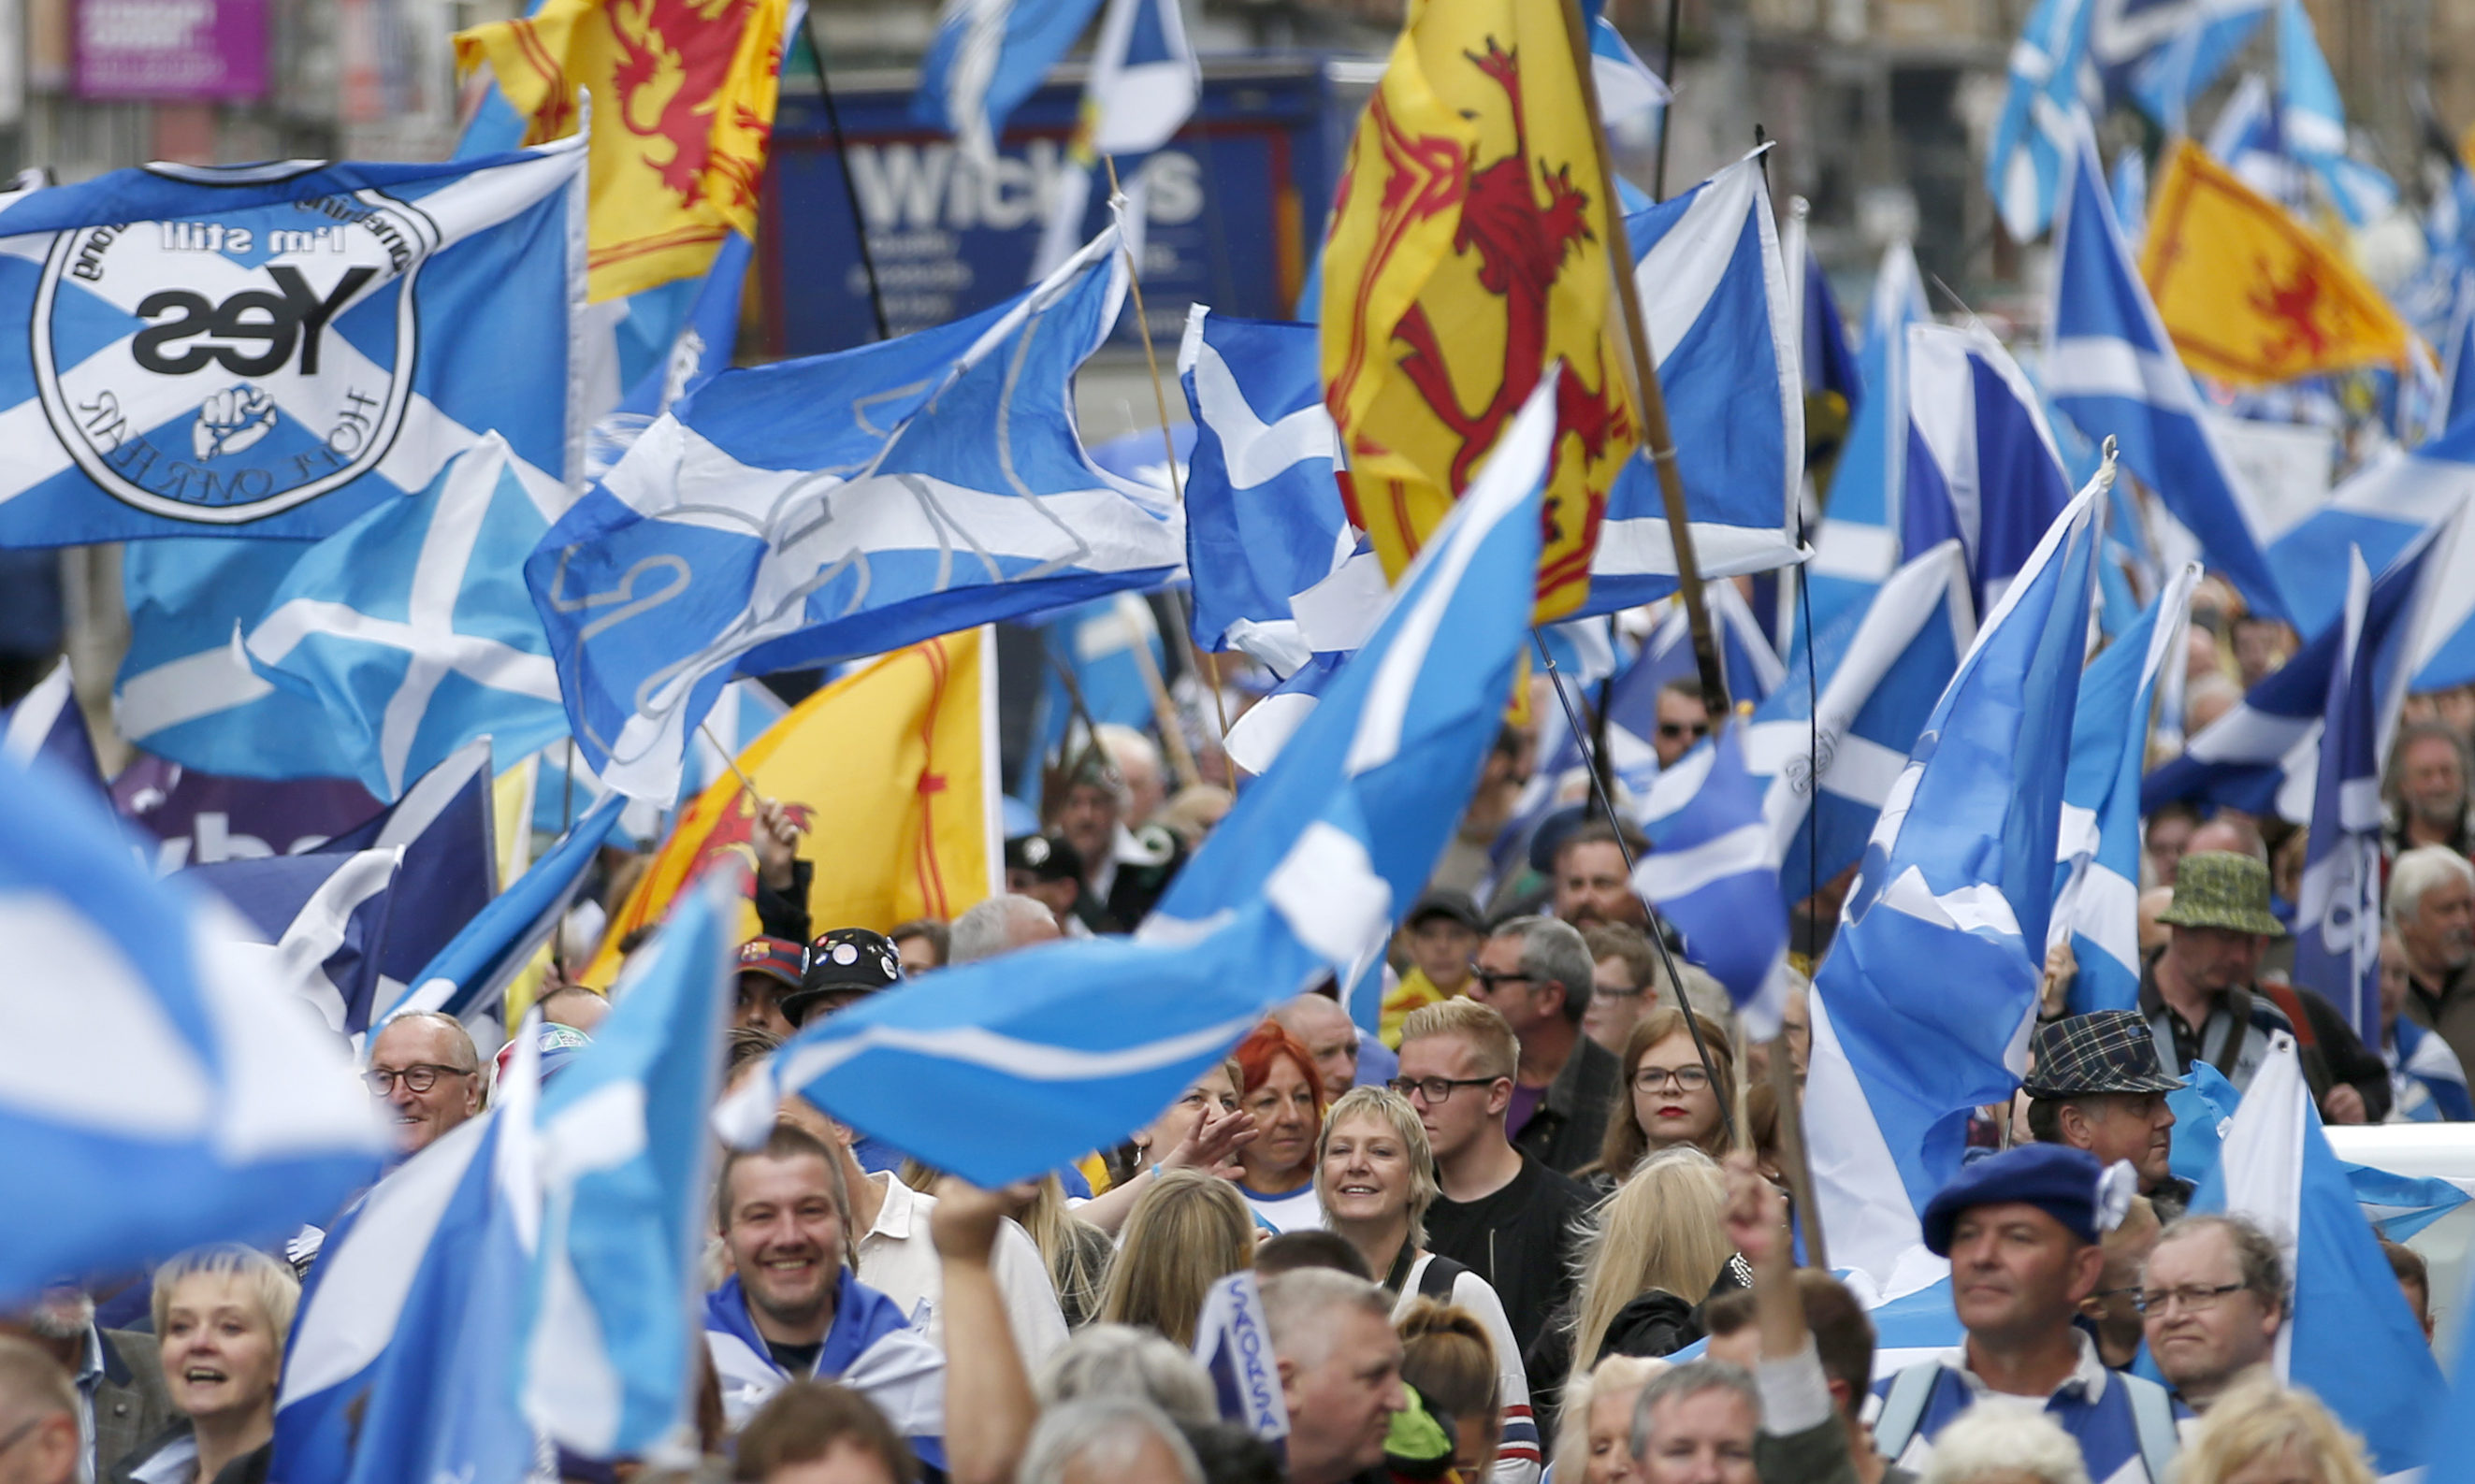 Scottish independence supporters gathered.